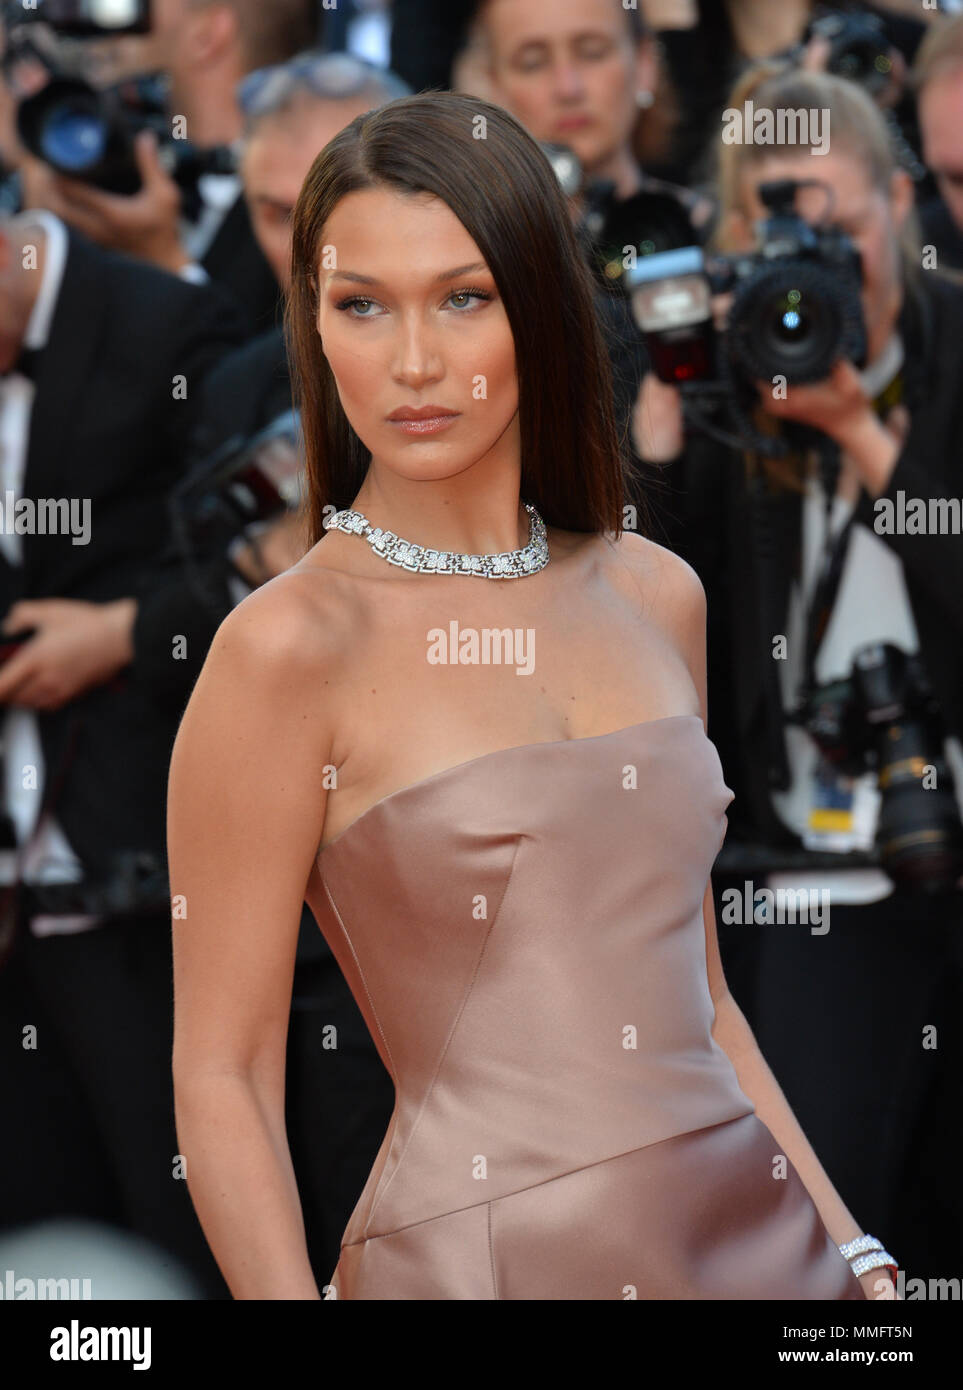 """CANNES, FRANCE. May 11, 2018: Bella Hadid at the gala screening for """"Ash Is The Purest White"""" at the 71st Festival de Cannes Picture: Sarah Stewart Credit: Sarah Stewart/Alamy Live News Stock Photo"""